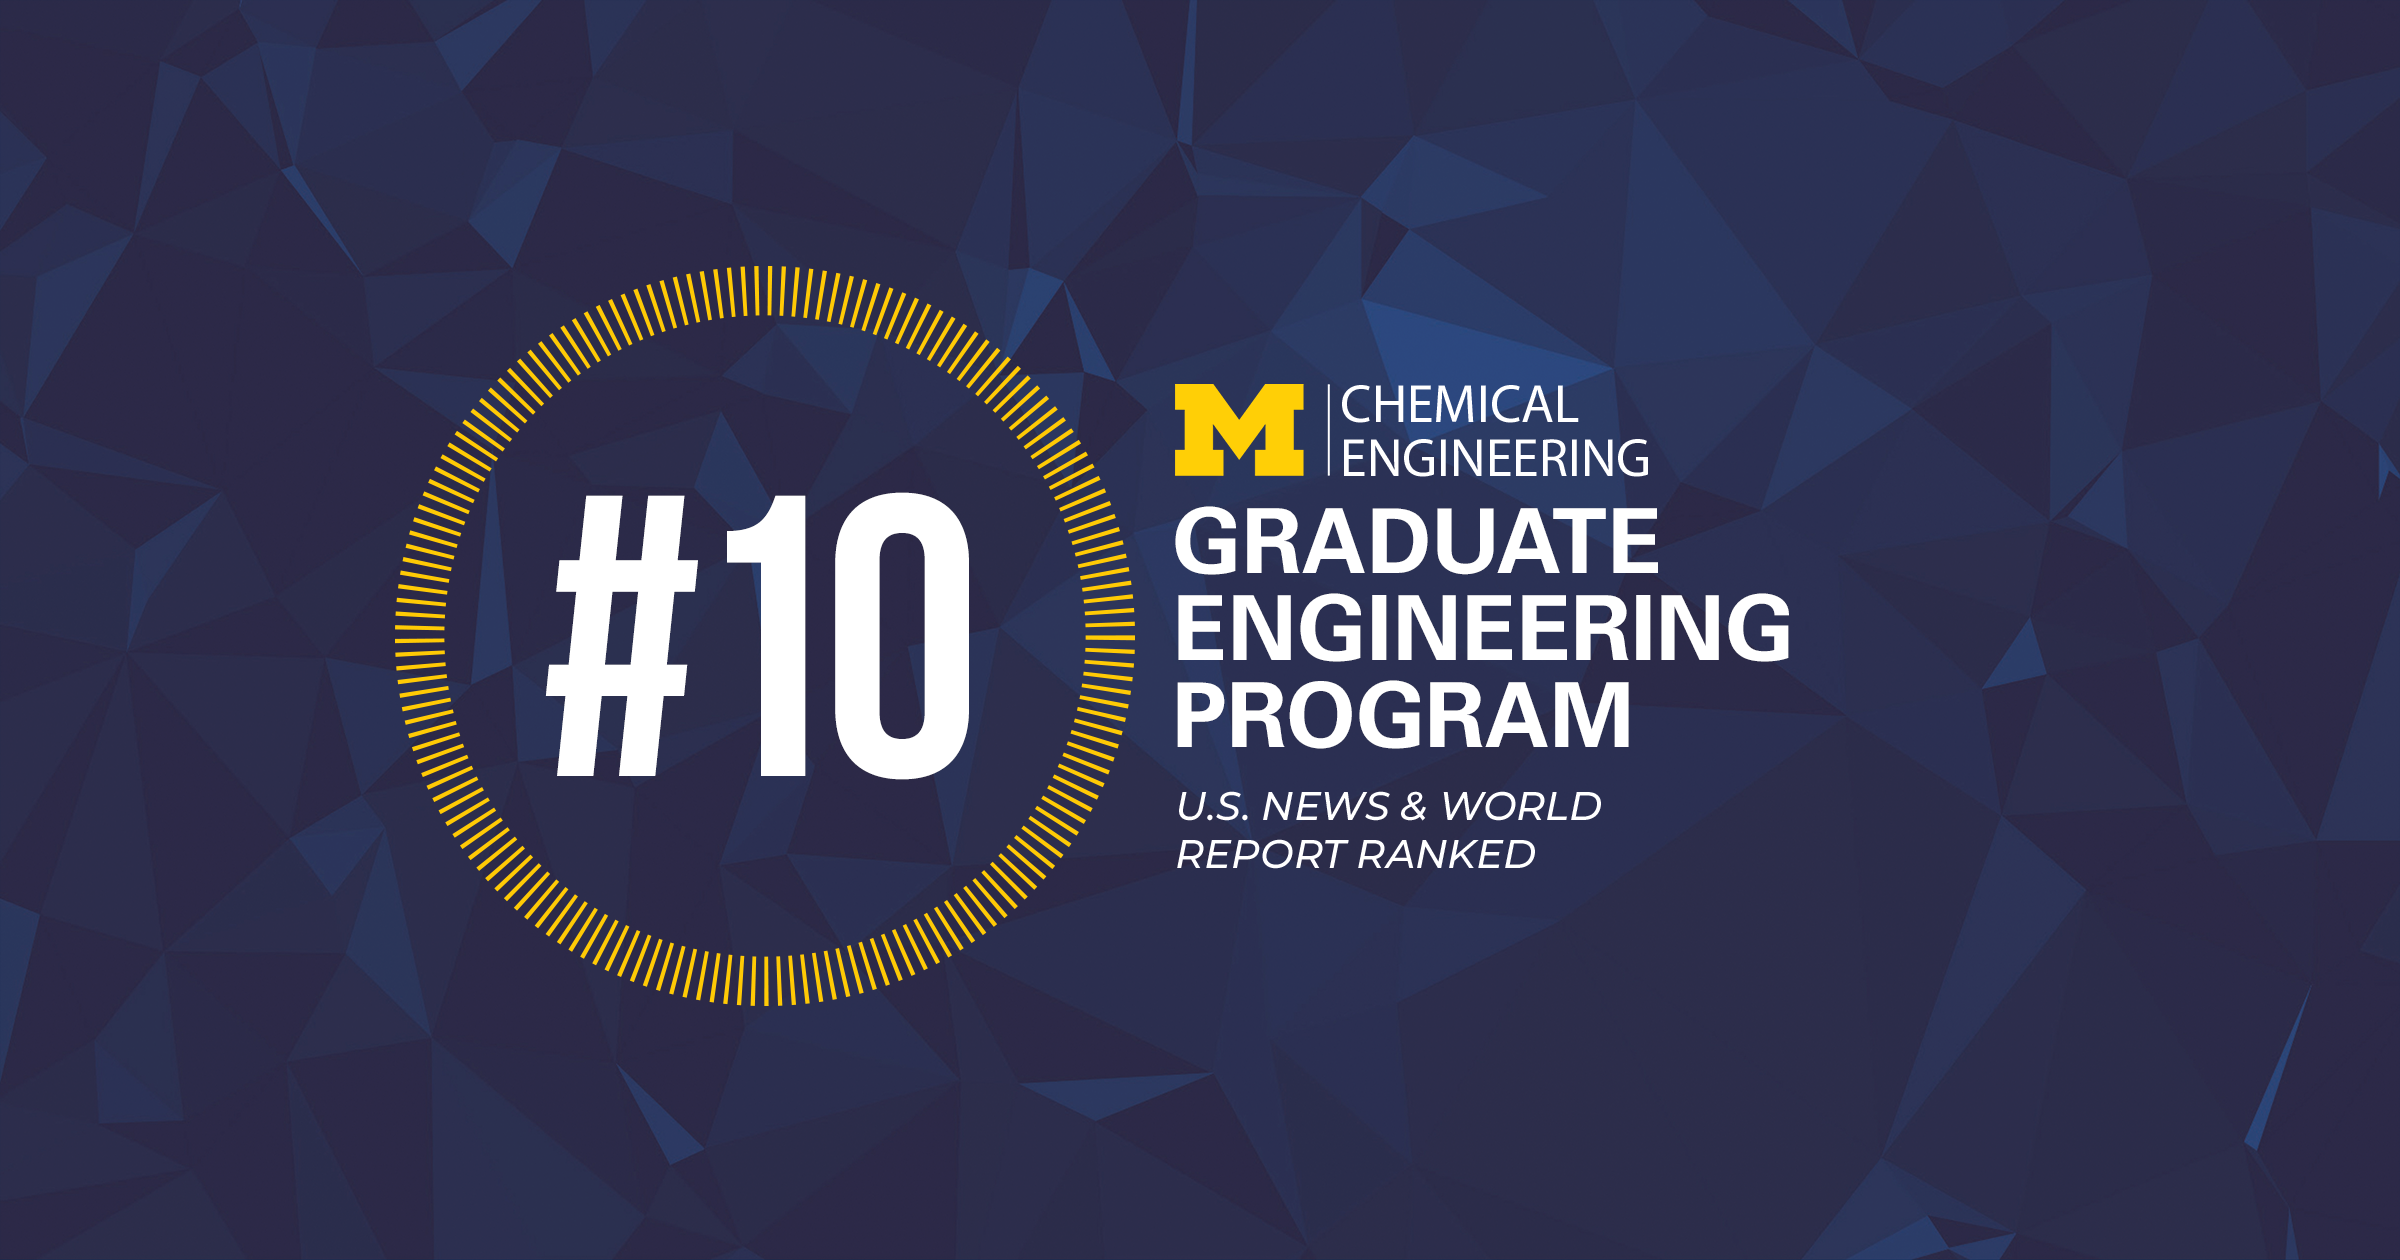 White text on blue background announcing the U-M Chemical Engineering graduate program is ranked 10 by US News & World Report.